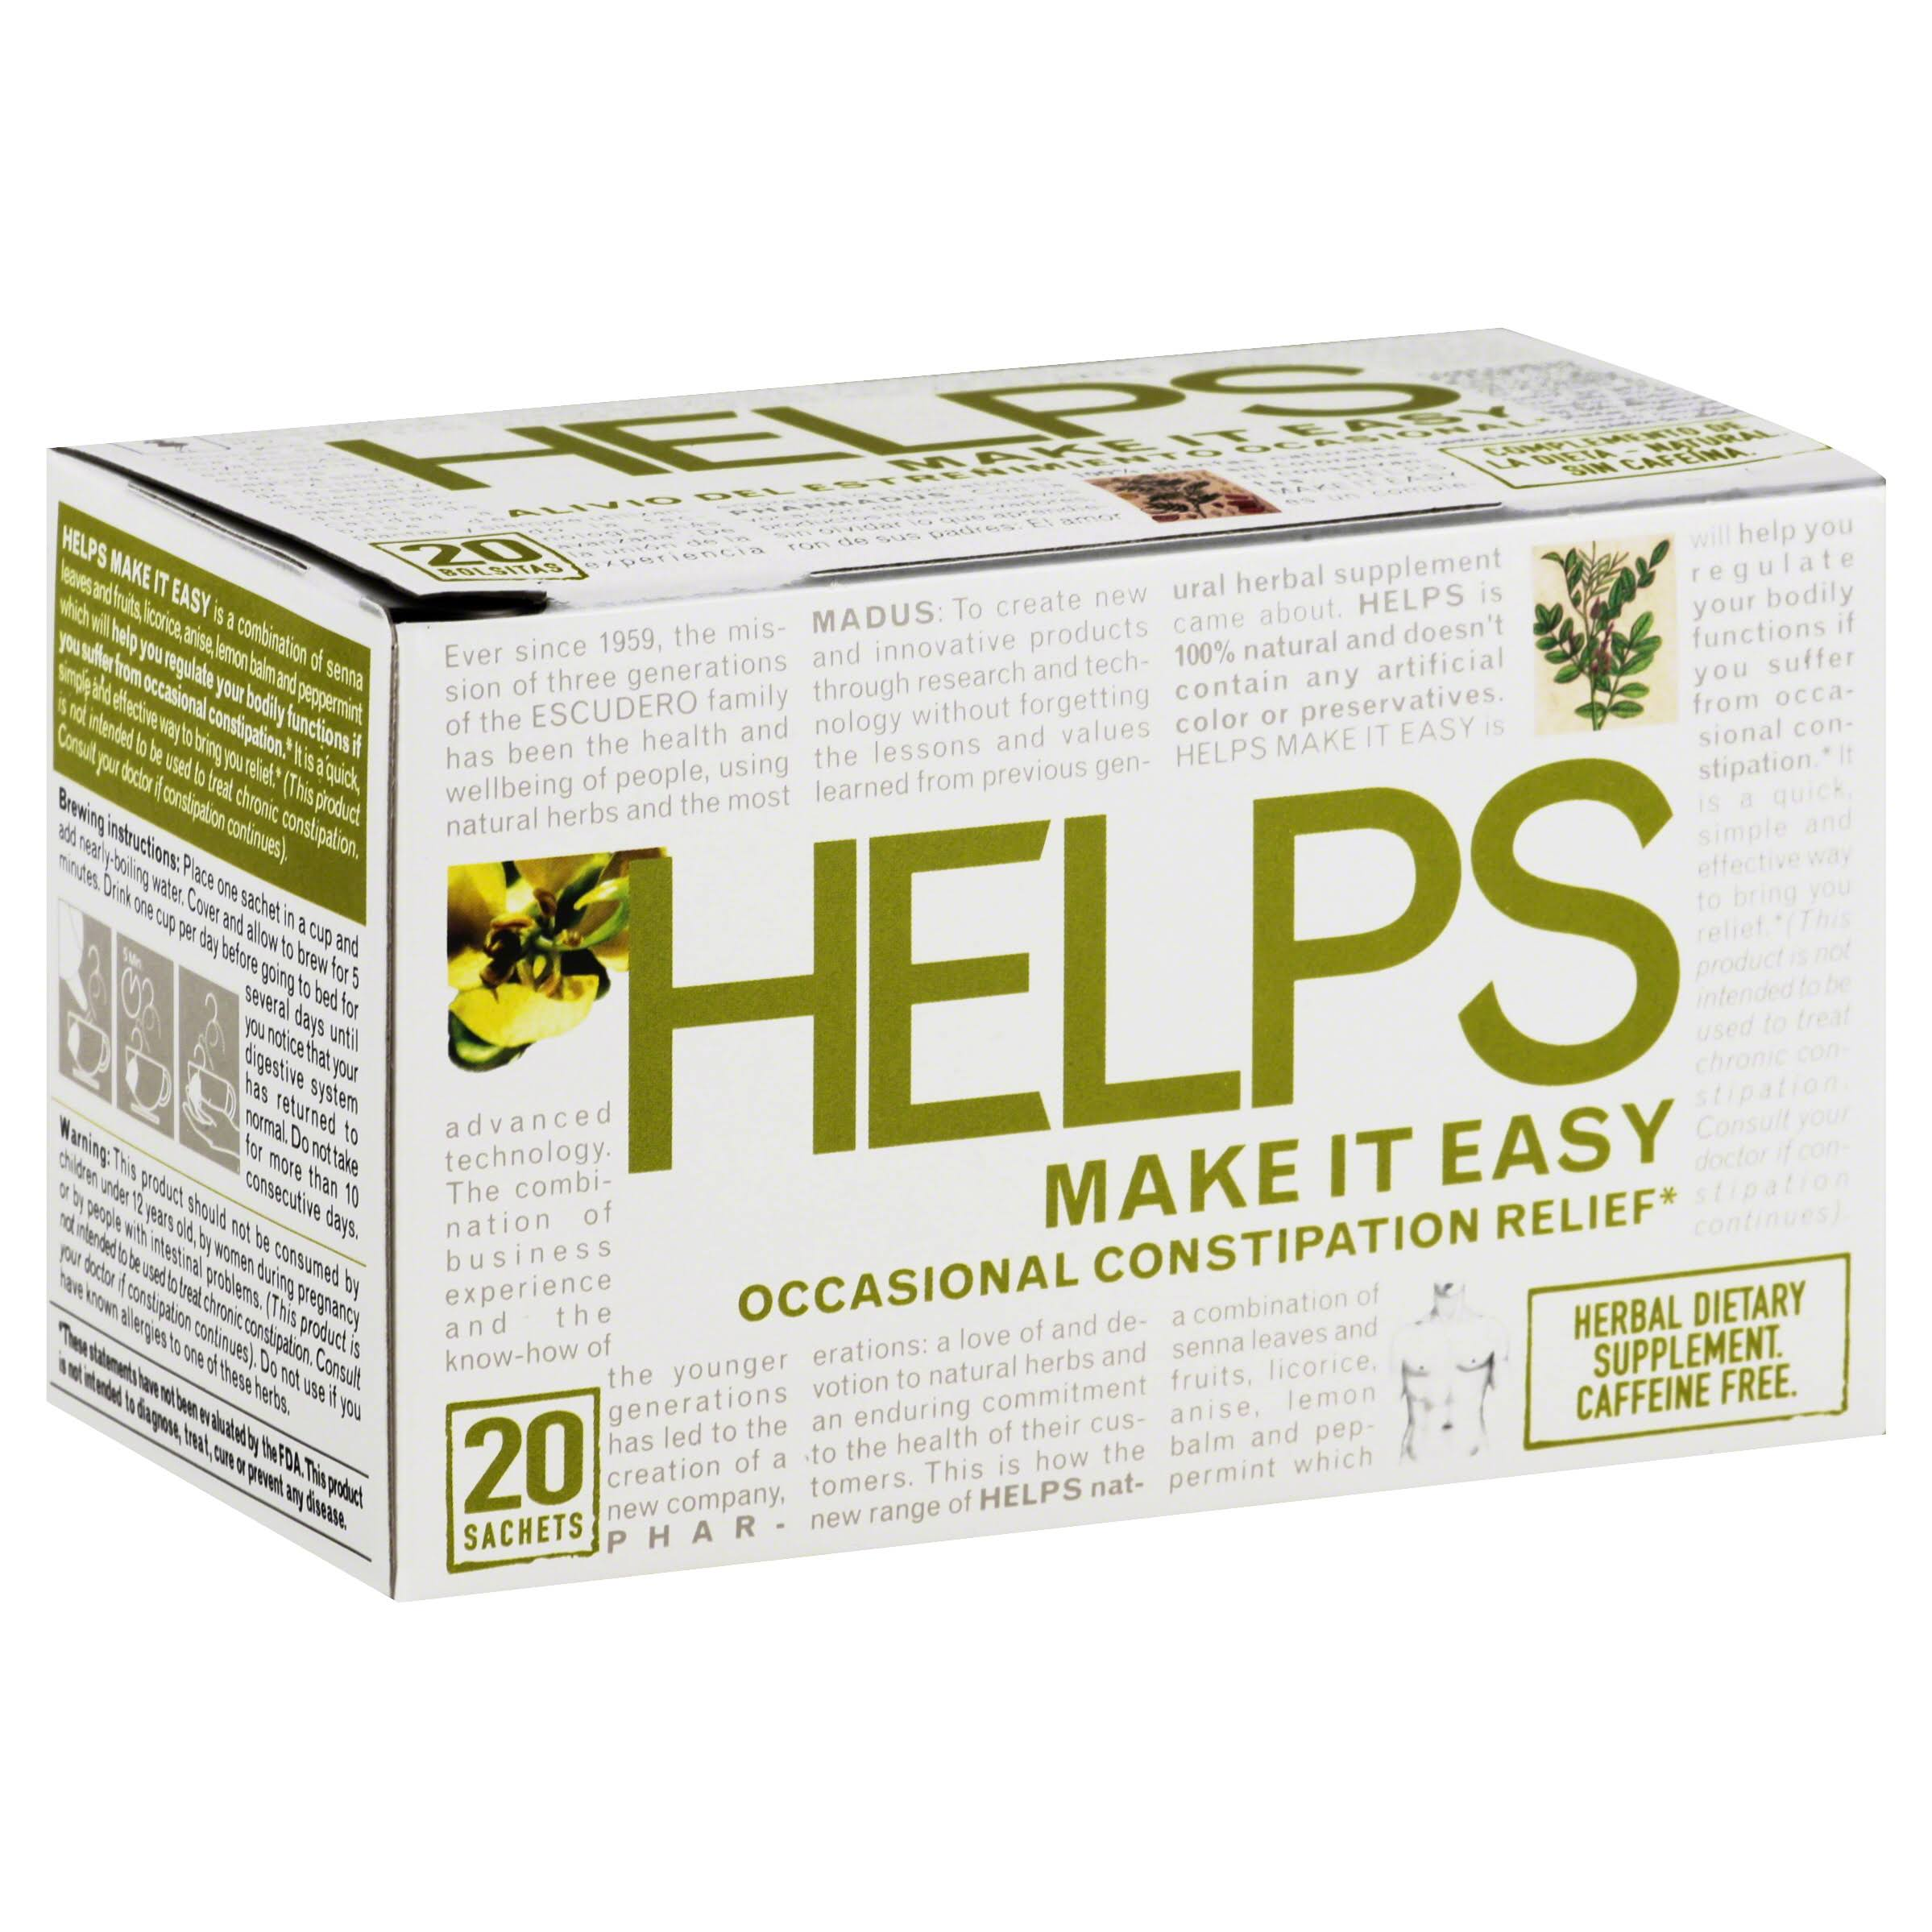 Helps Teas Make It Easy Tea - 20ct